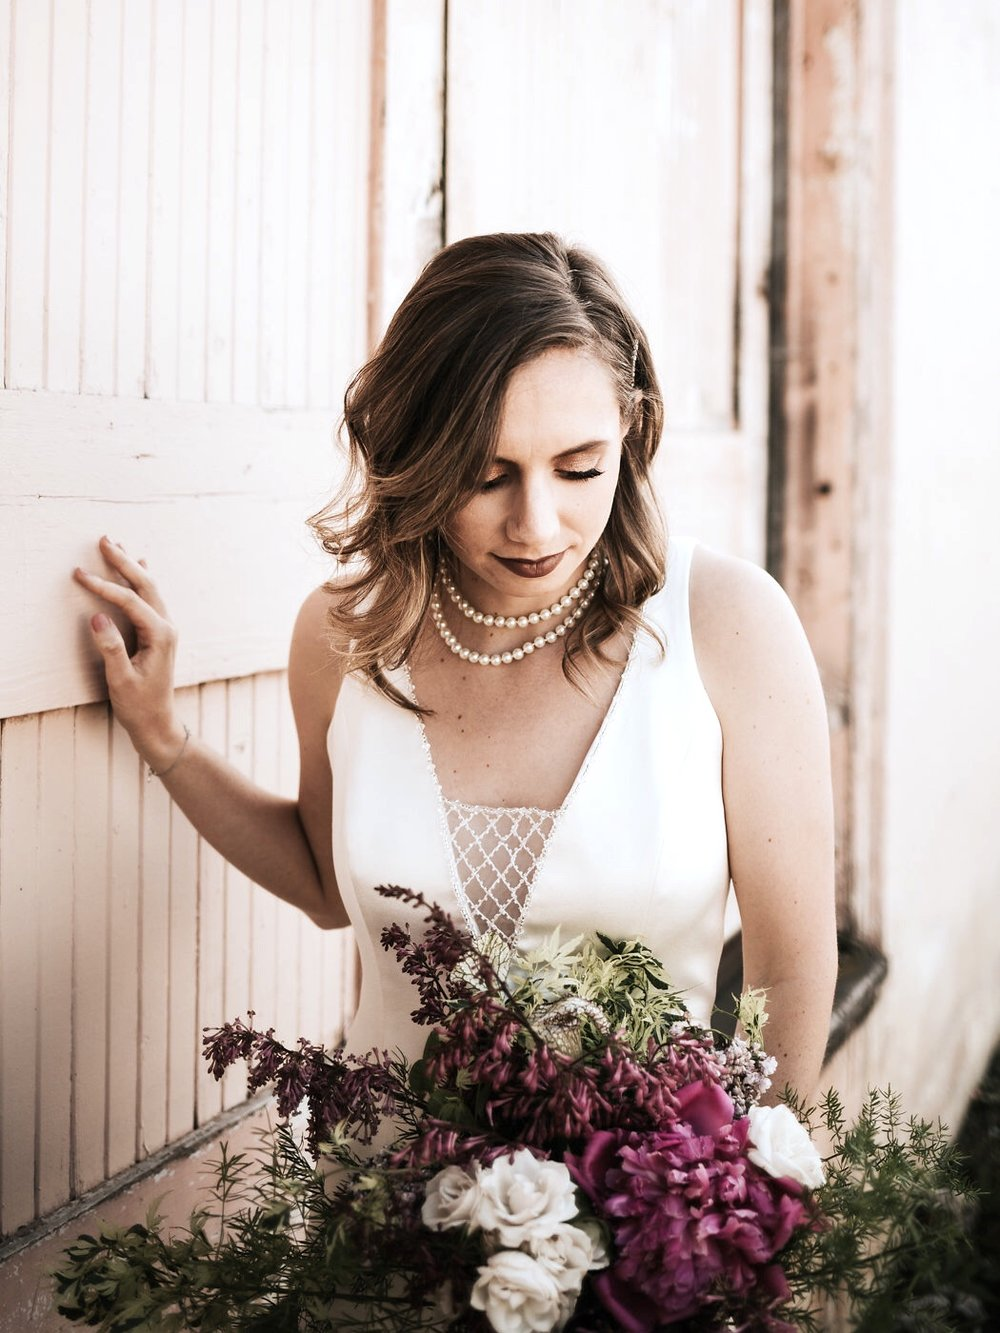 Photography by  Sarah Olivia Photo , Floral Design by  Poppies and Paisley Floral , Model Carrissa Pahl, Bridal Shop  Bespoke Bride , Dress Designer  Grace Mariee Original , Make-Up by  Katarina Tiley MUA , Hair by  Cheri Domenigoni